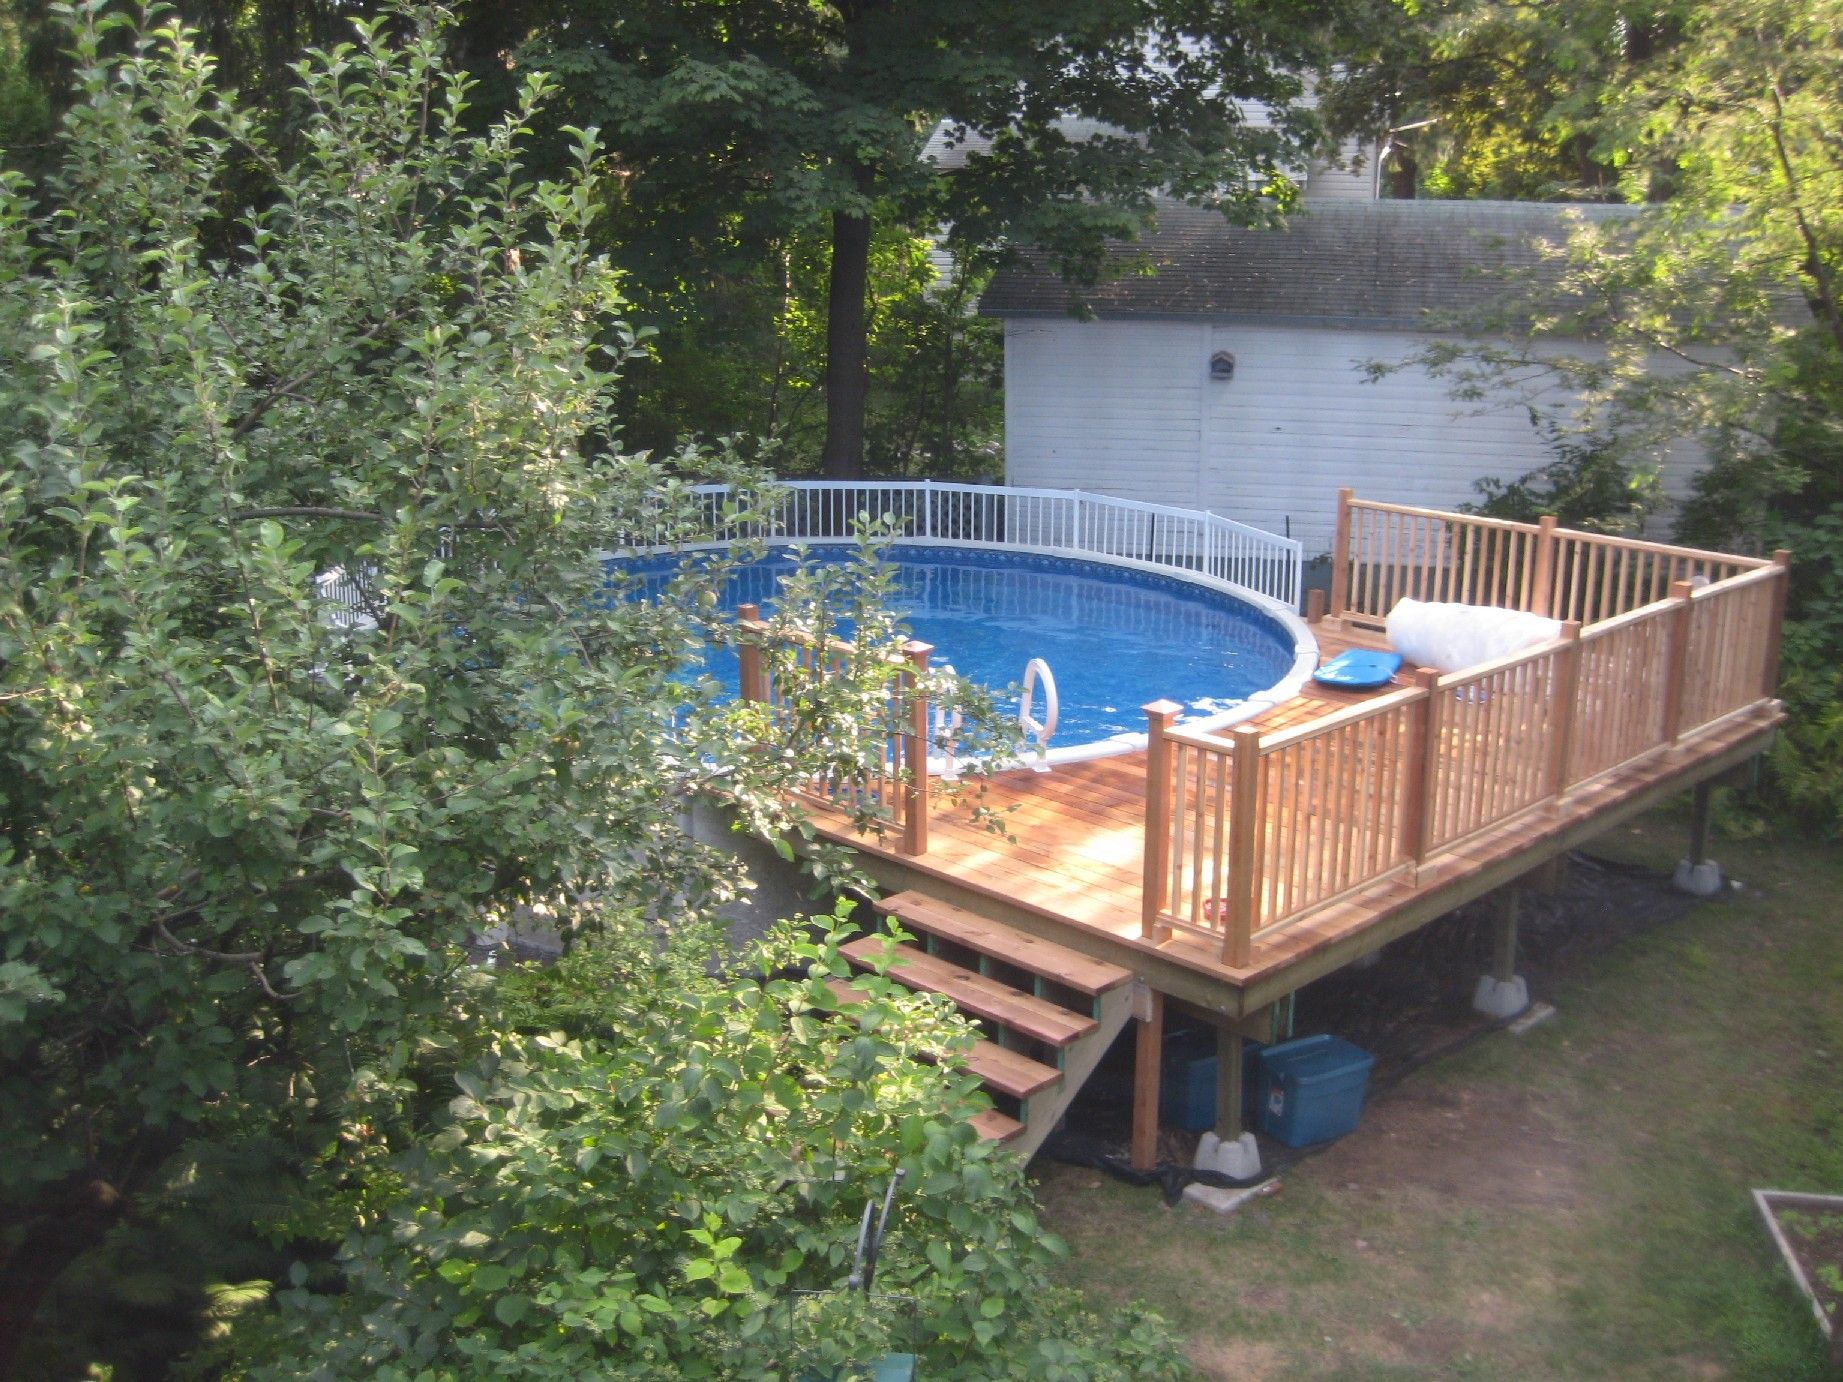 Above Ground Pool Deck Designs three solutions for sprucing up an above ground pool Above Ground Pool Decks Idea For Your Backyard Decor Round Above Ground Pool Decks Fro